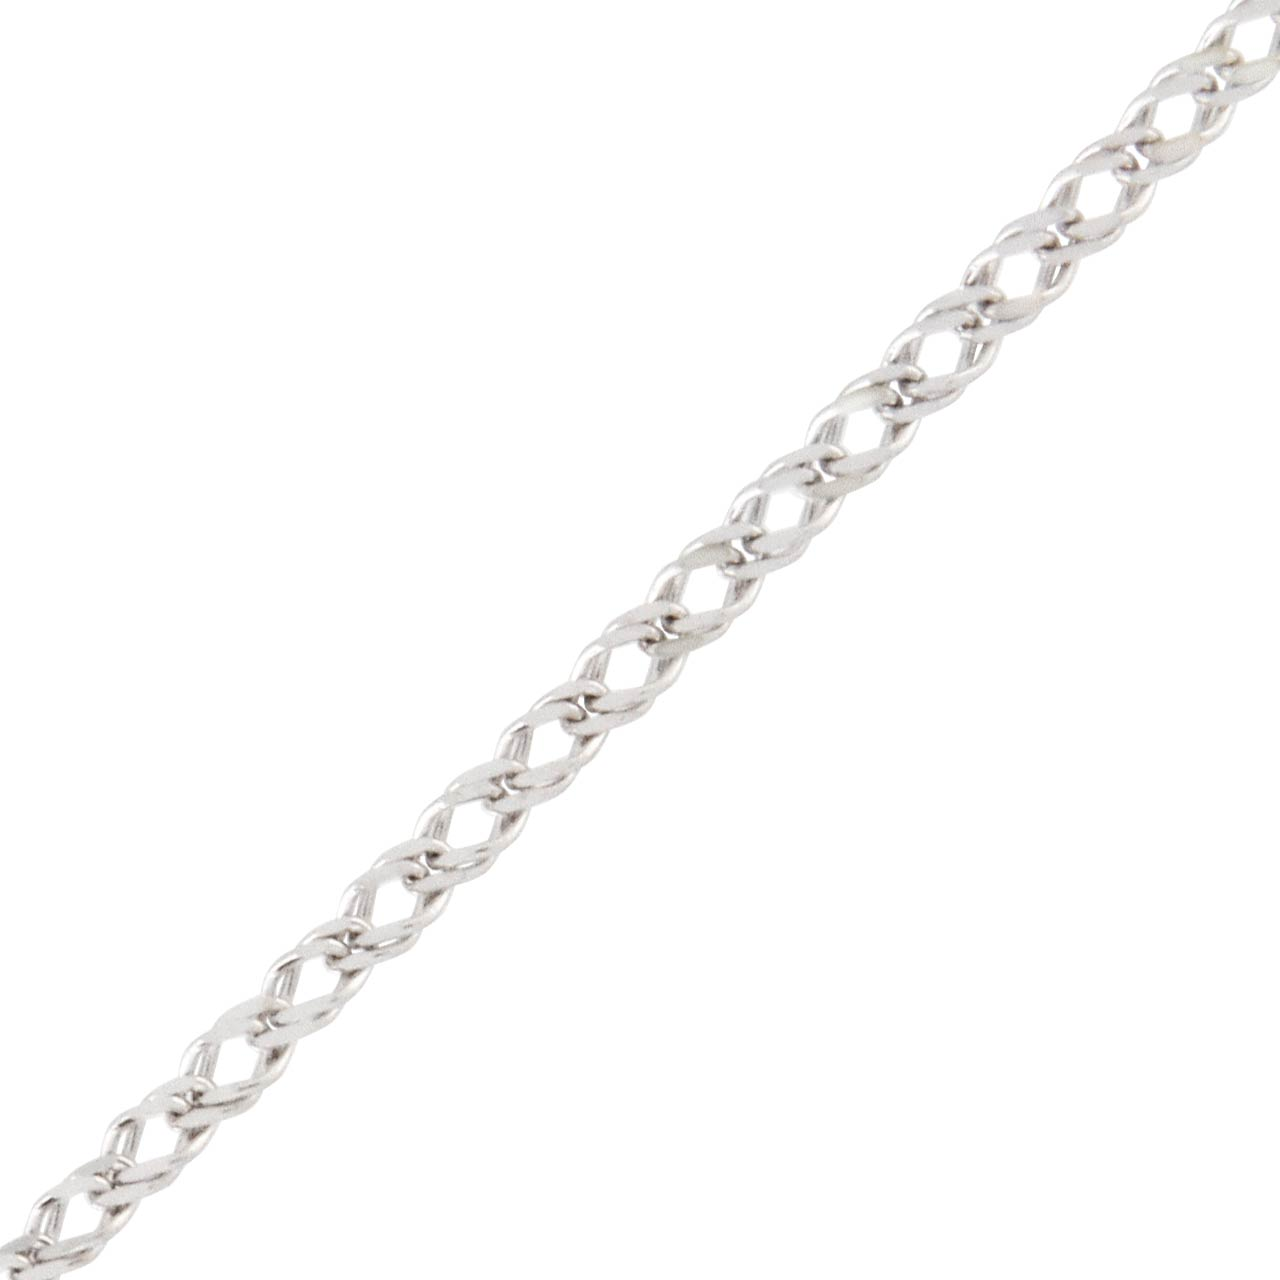 Diamond-cut Double Curb-link White Gold Chain with Width 1.6mm. View 2